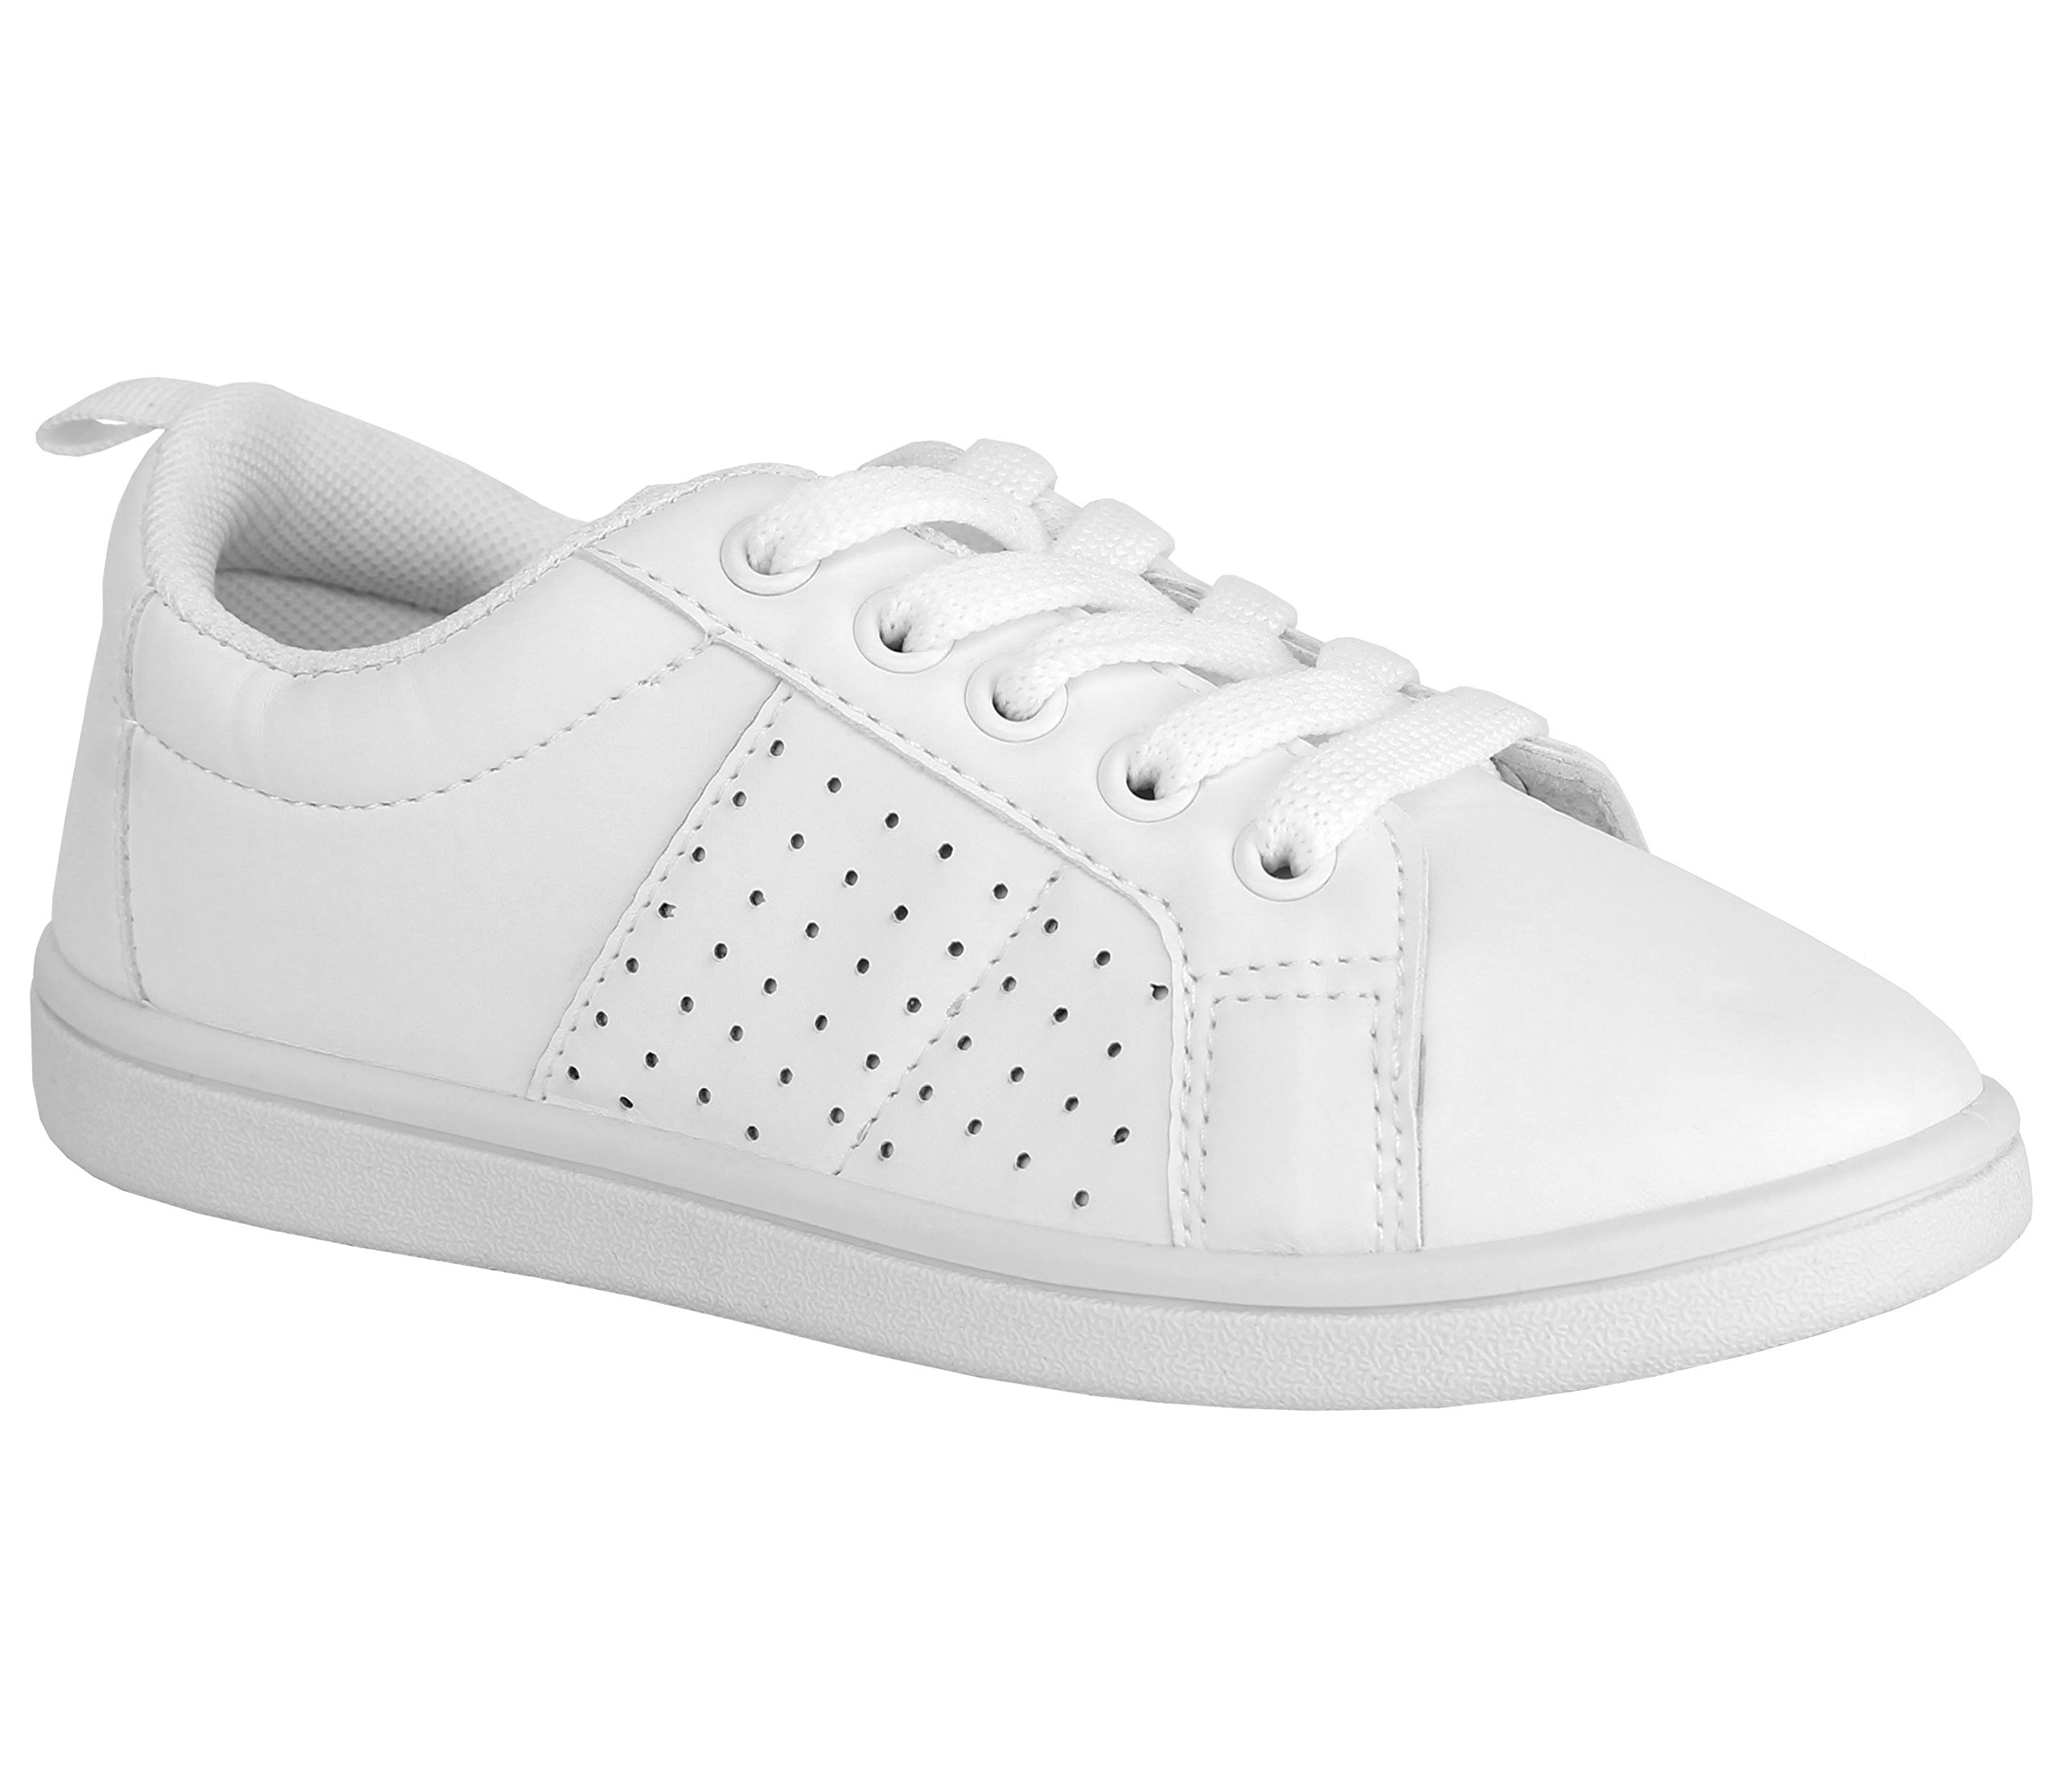 Chillipop White Fashionable Sneakers for Girls Tennis Shoes